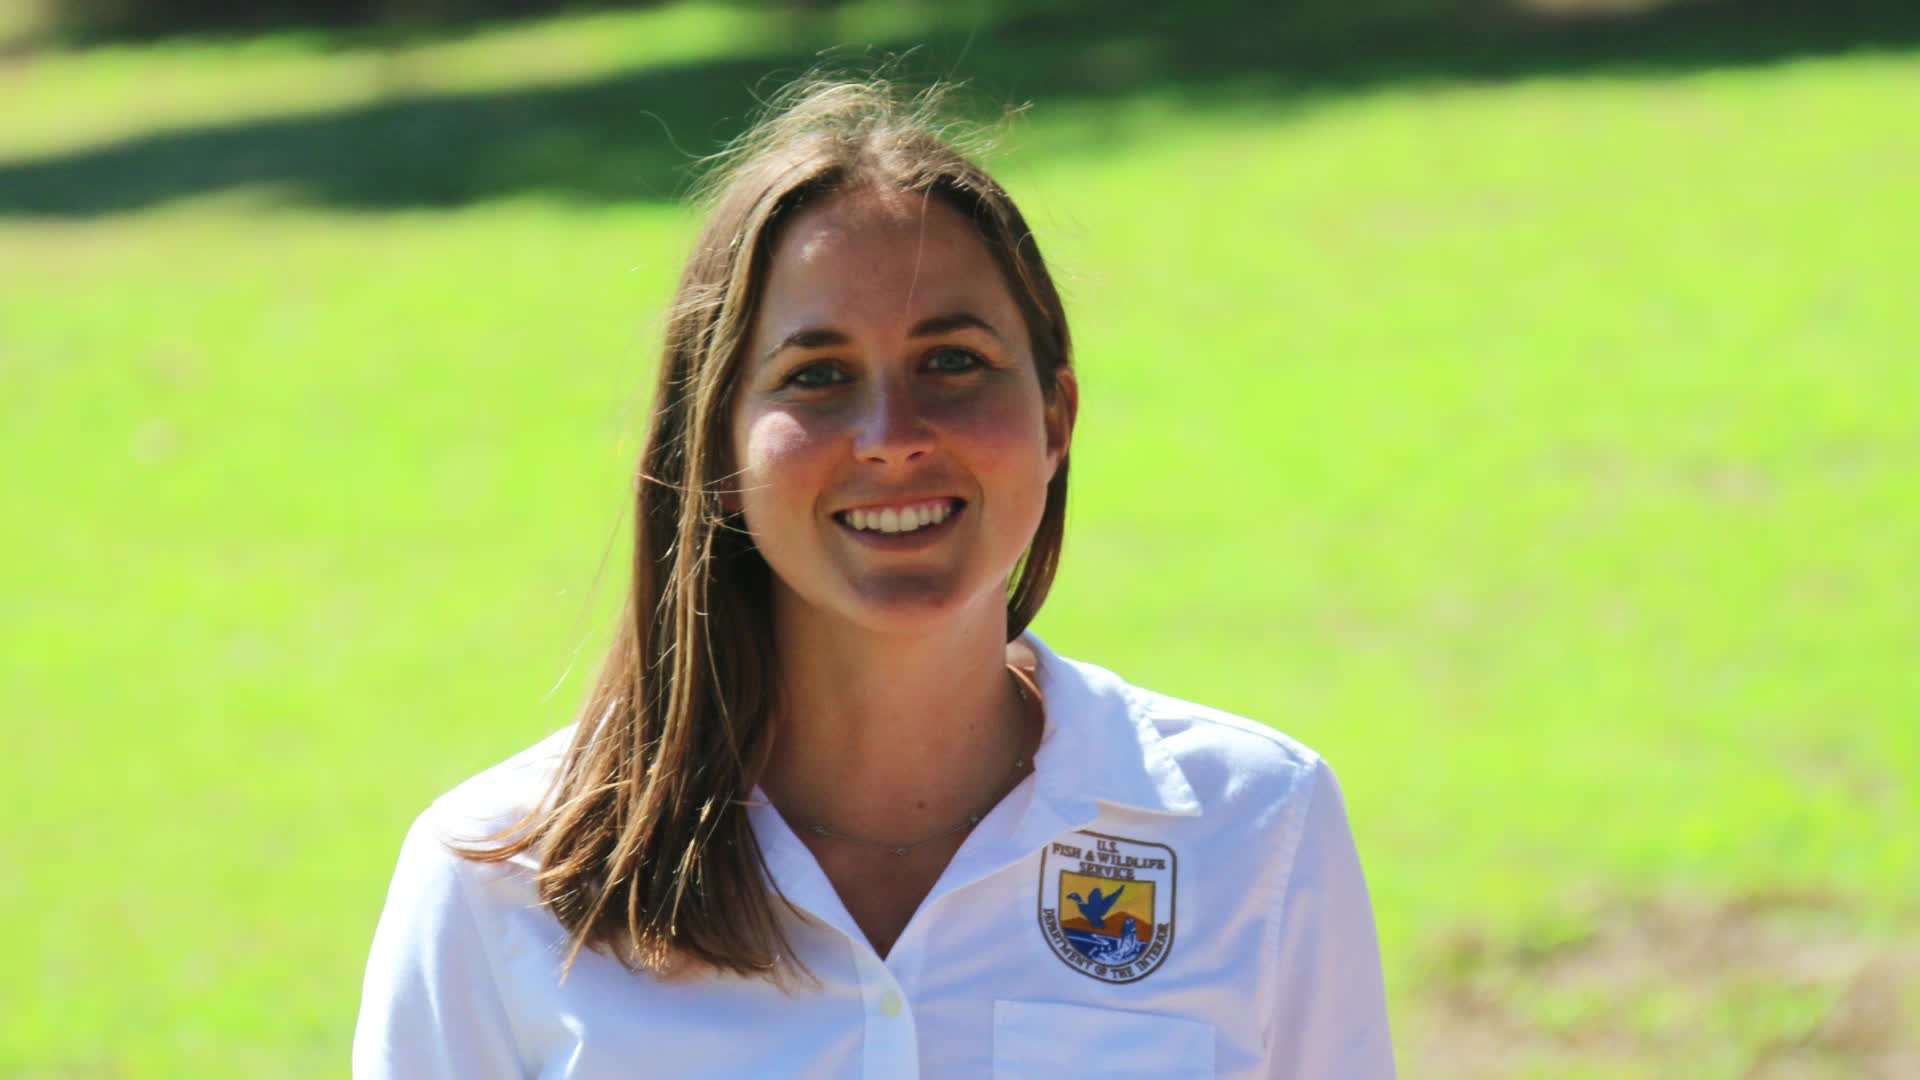 Interview with wildlife biologist Colleen Grant